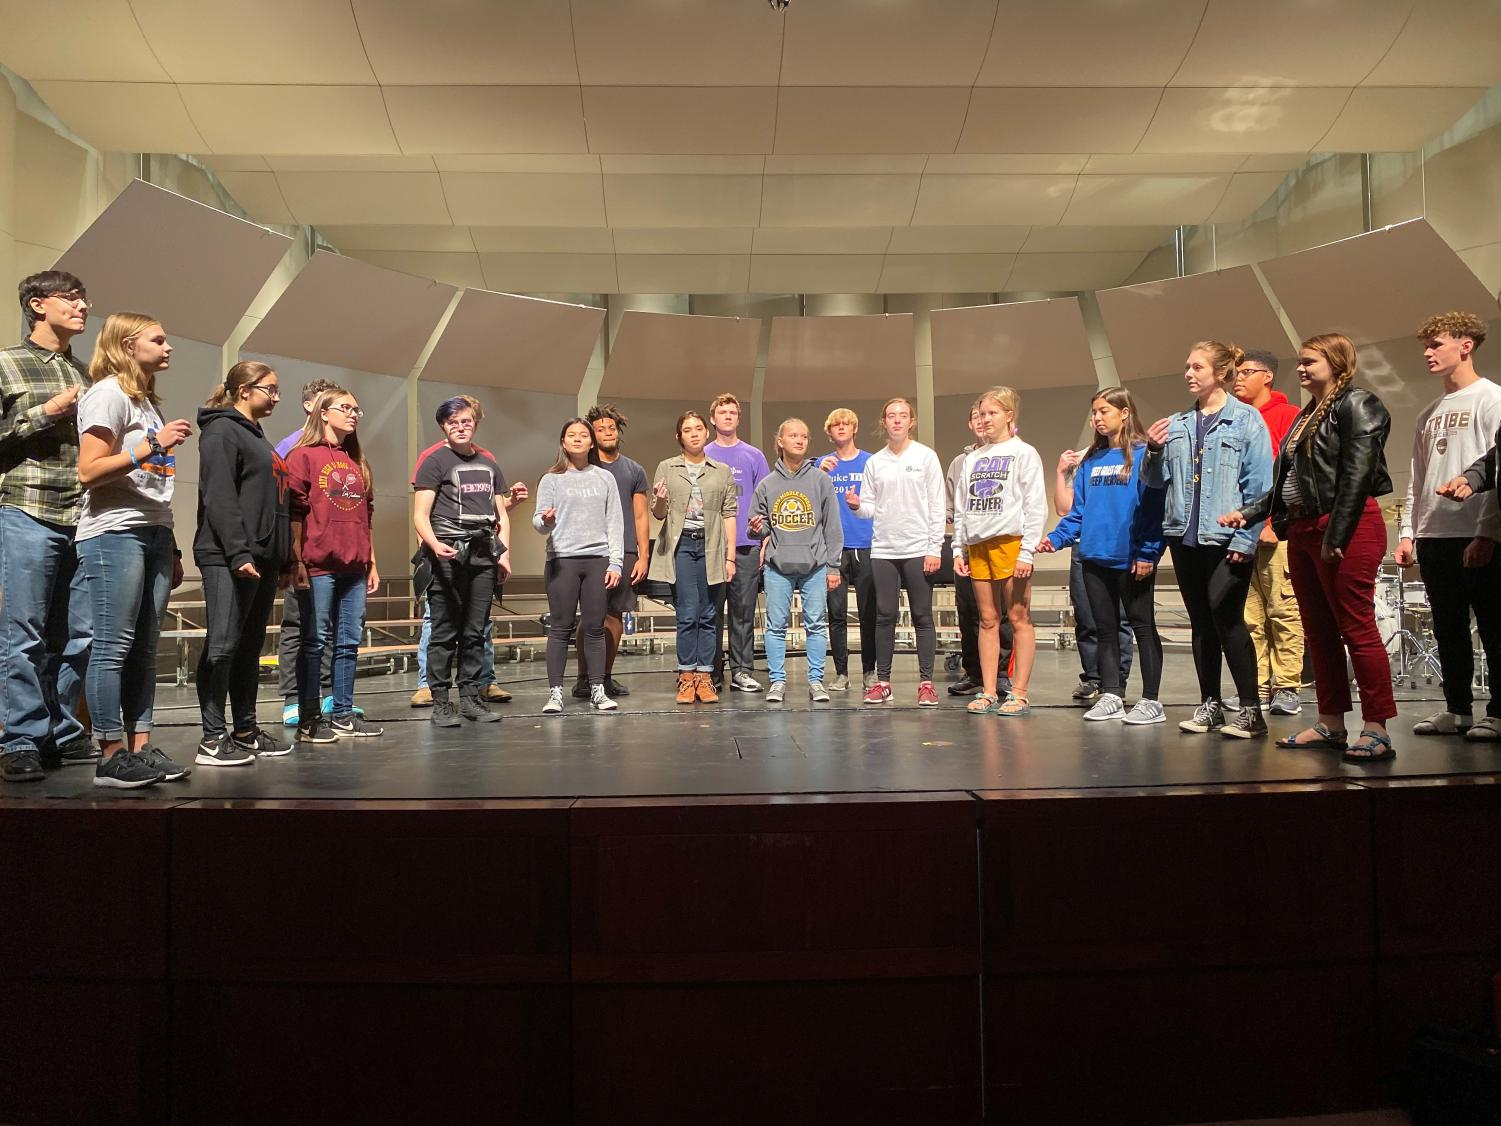 Chamber Singers practice a piece for their upcoming benefit concert they will be hosting. The concert is scheduled on Oct. 8 at 7 p.m. at the Beach Schmidt Performing Arts Center. They are donating all proceeds to the All Hands and Hearts organization.